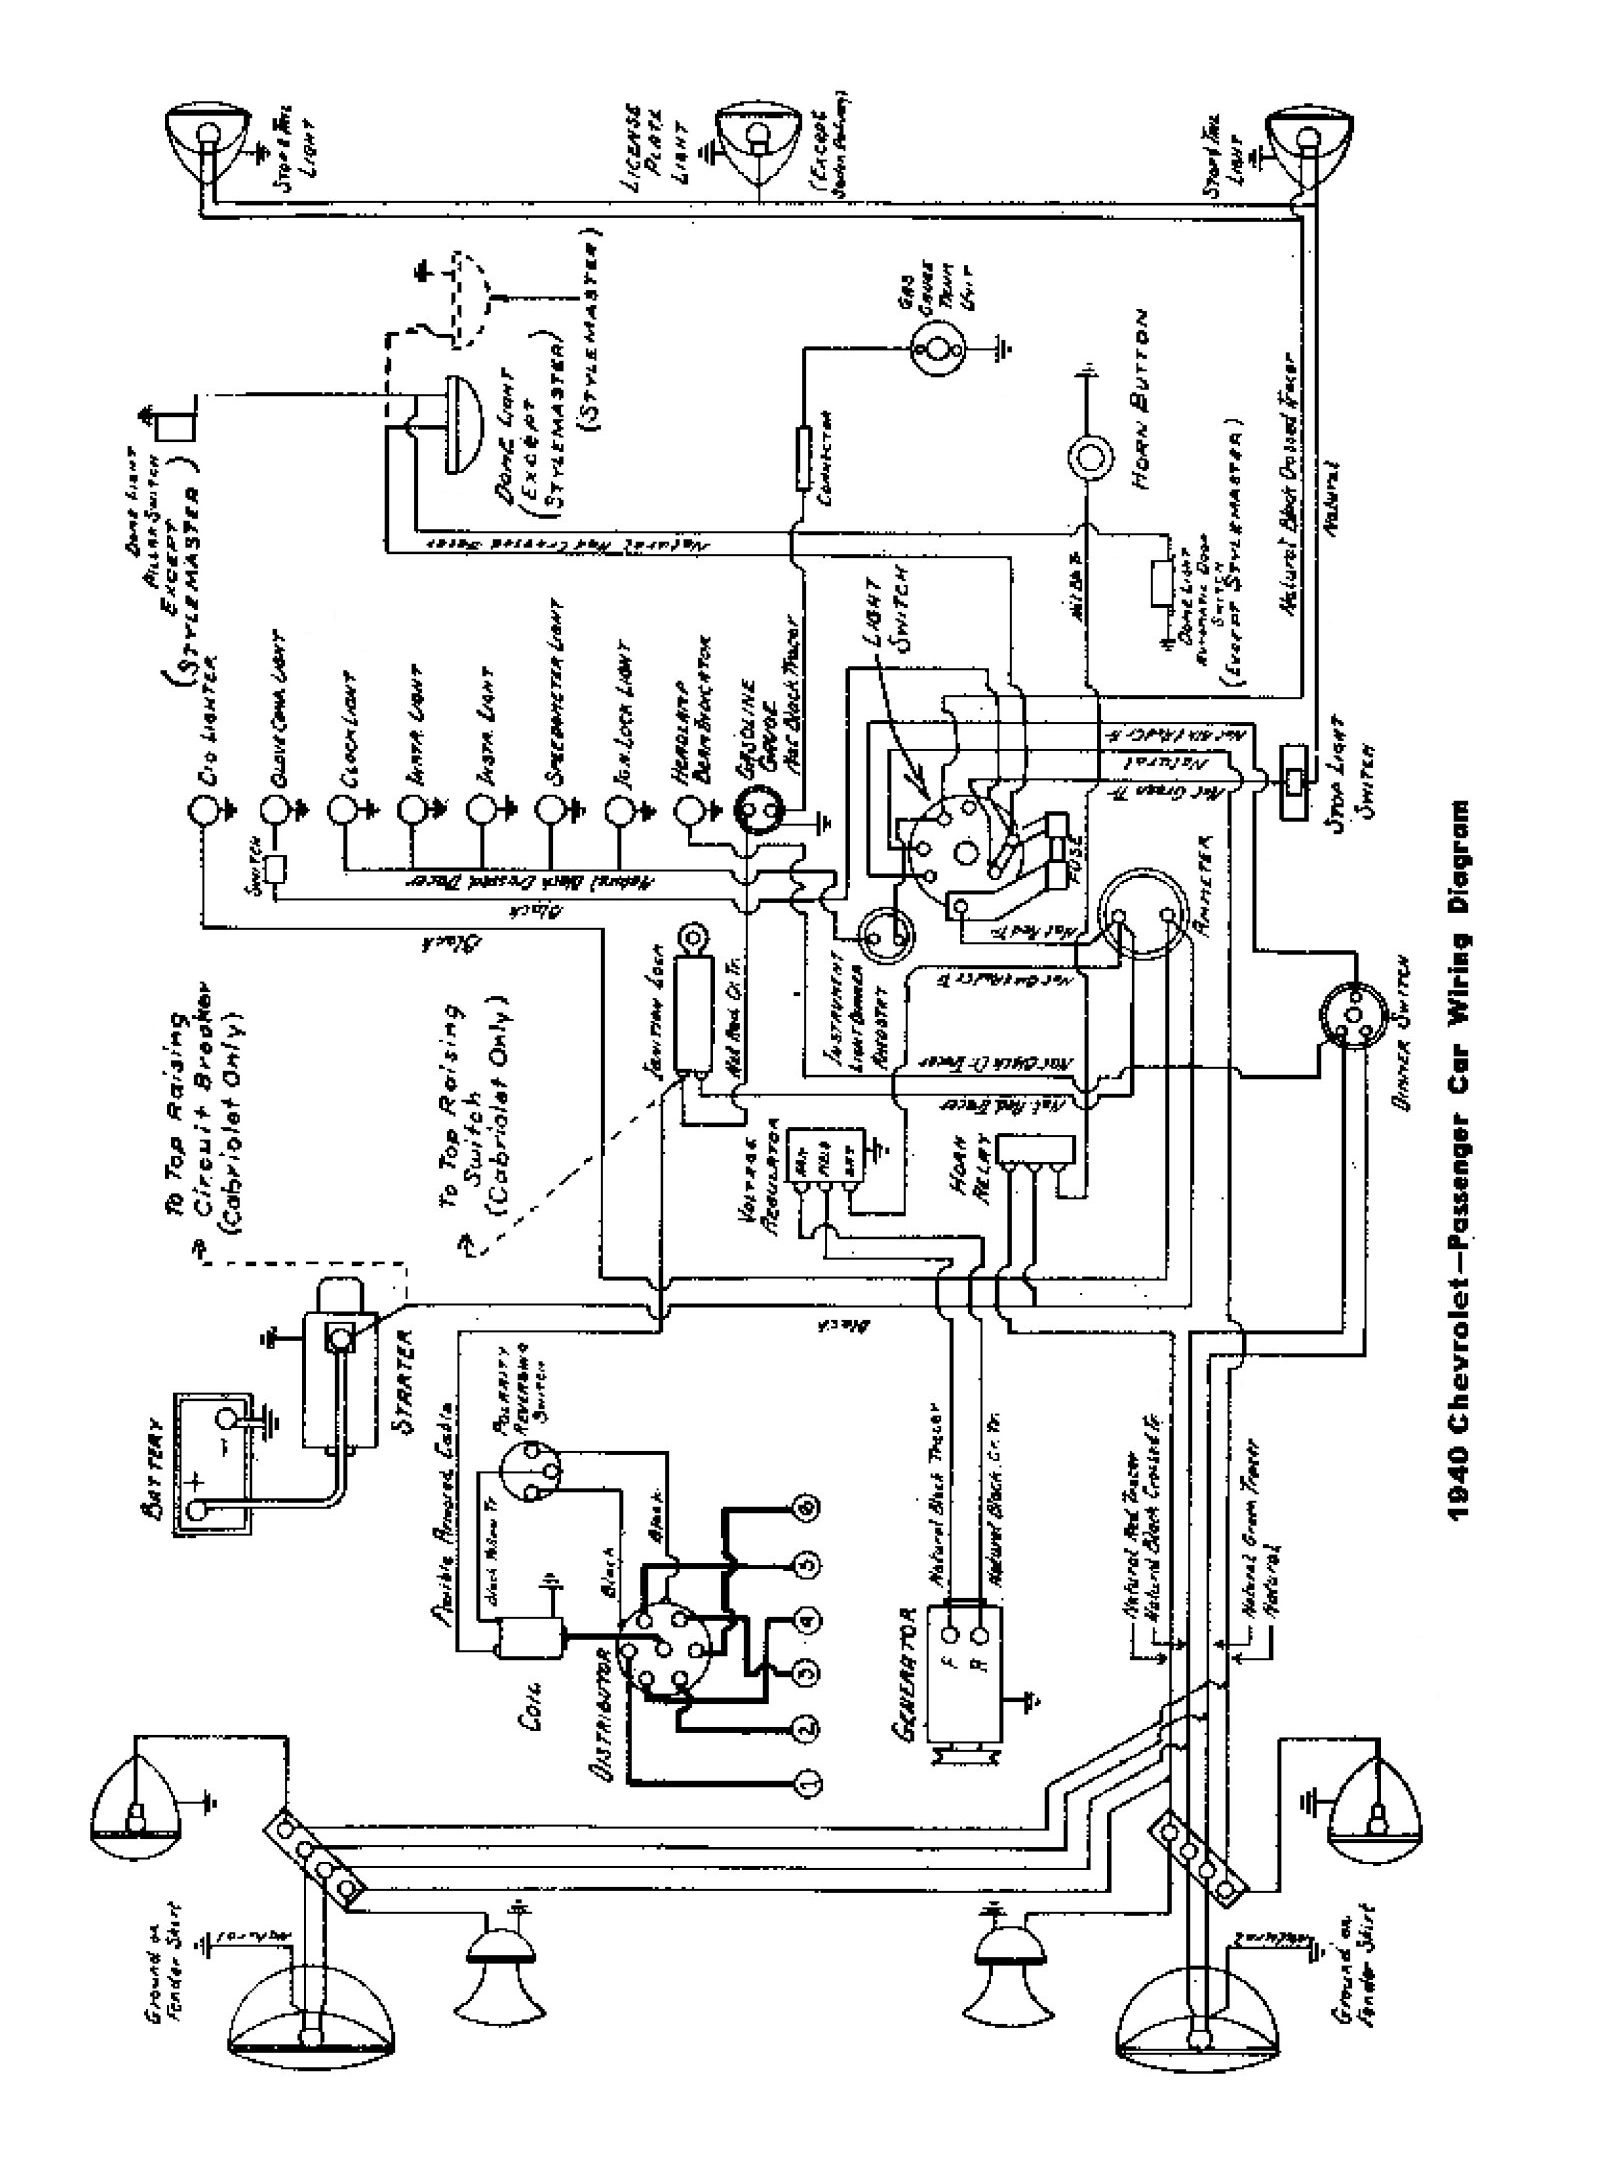 hight resolution of chevy wiring diagrams 1936 chevy wiring diagram 1940 chevy wiring diagram